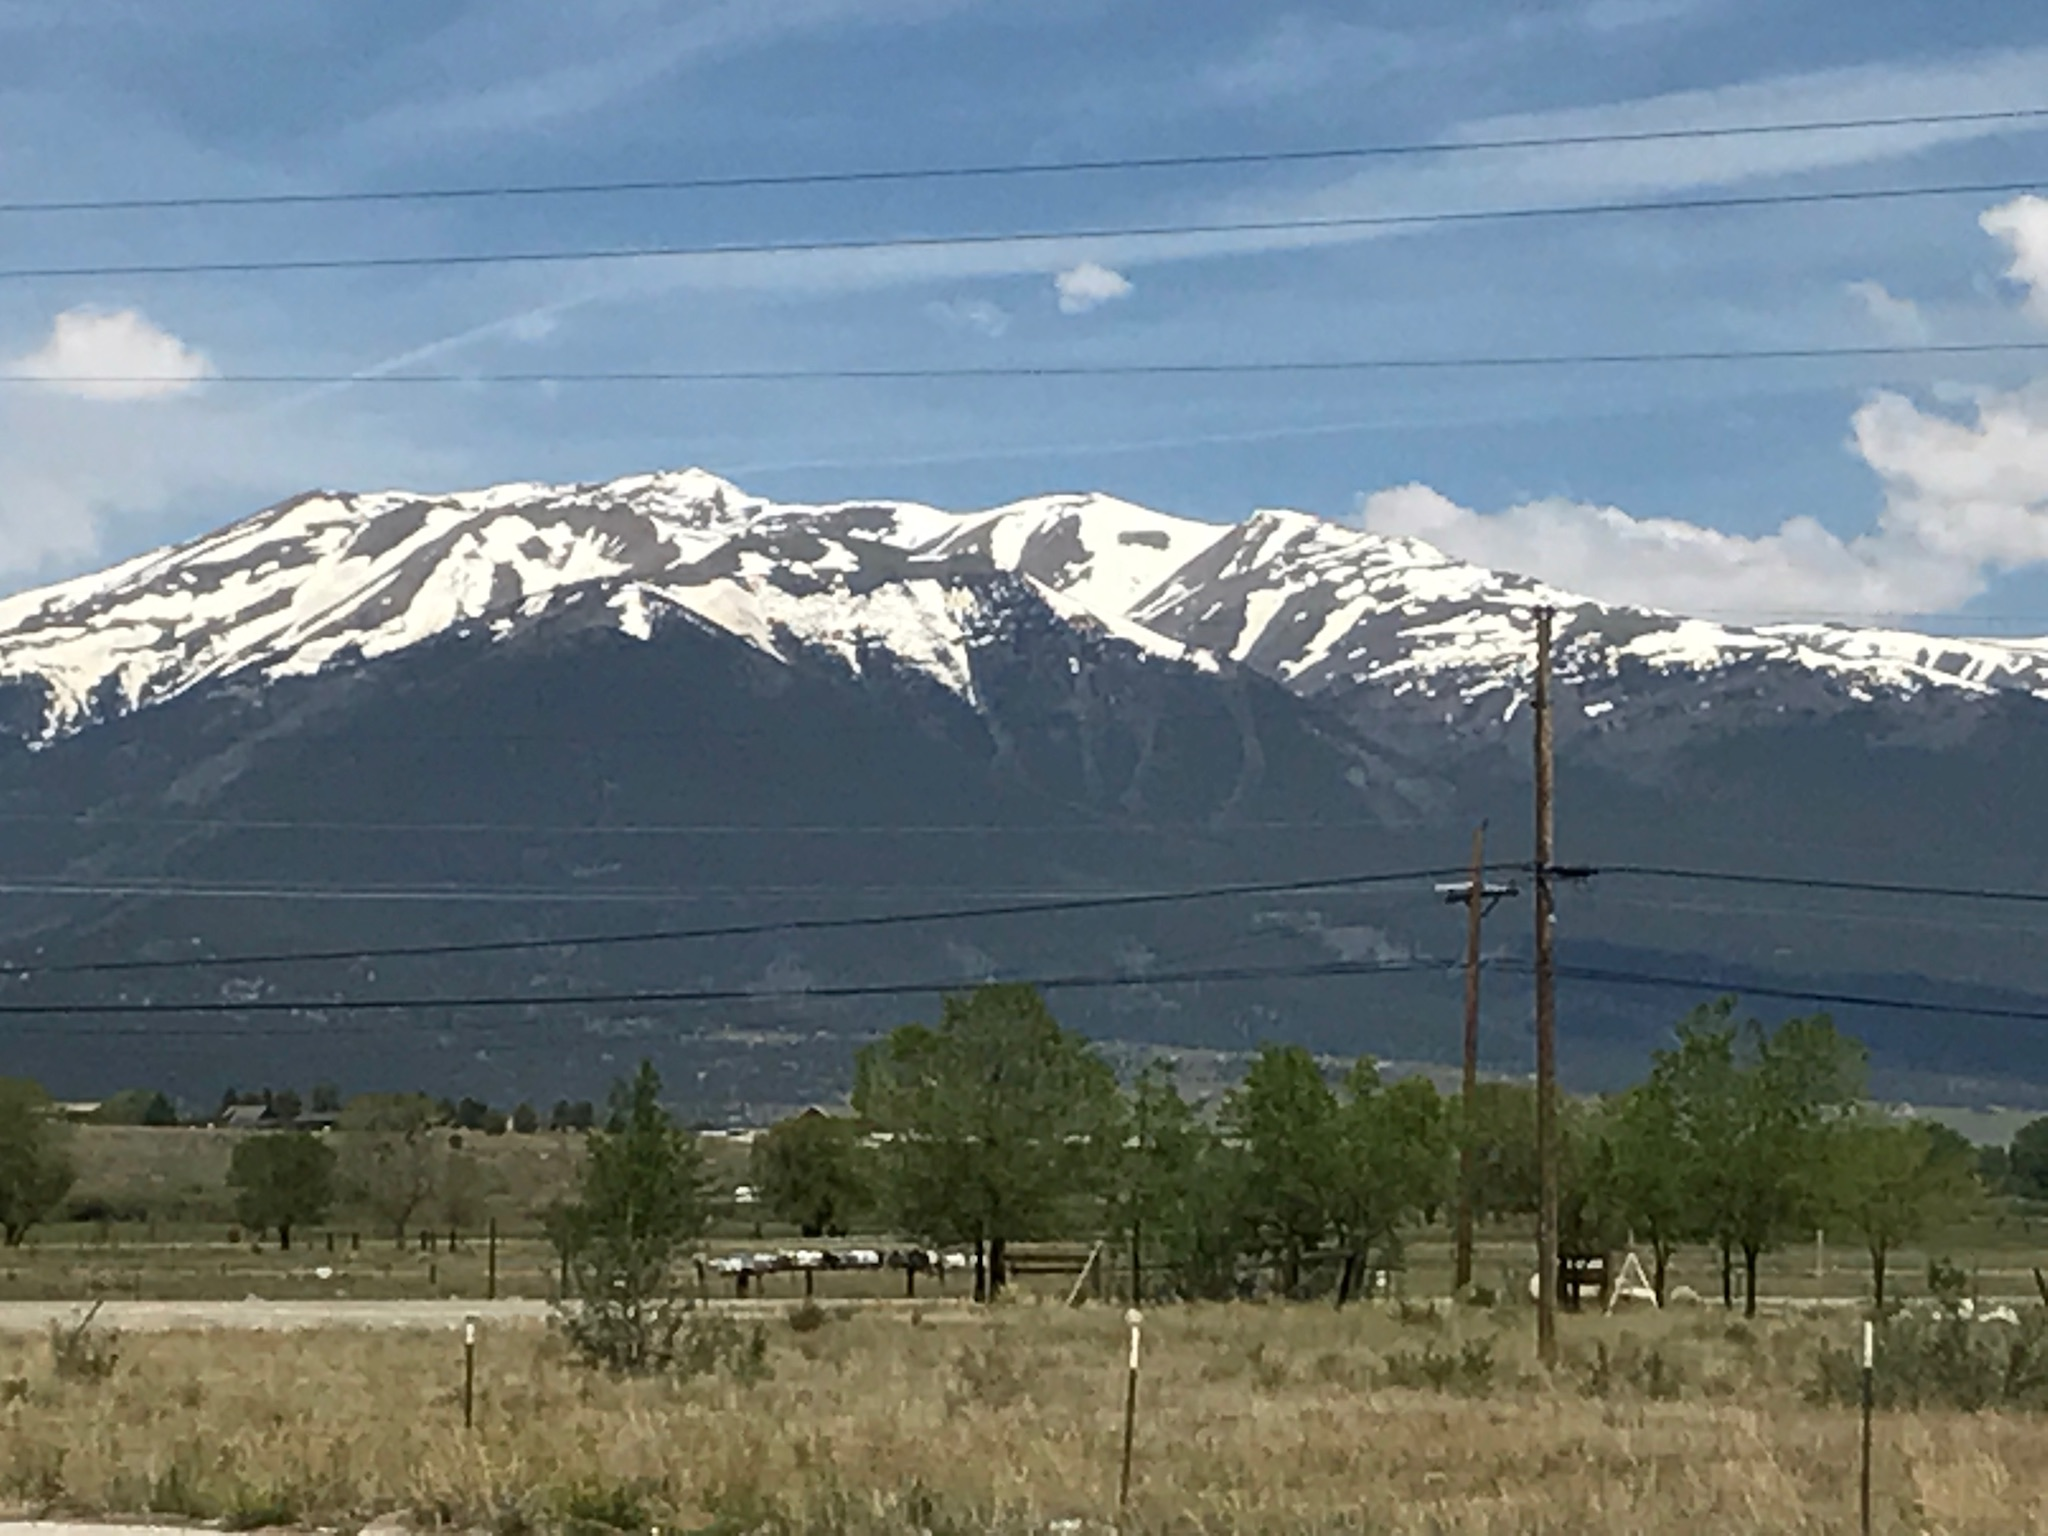 Riding to Fairplay, CO